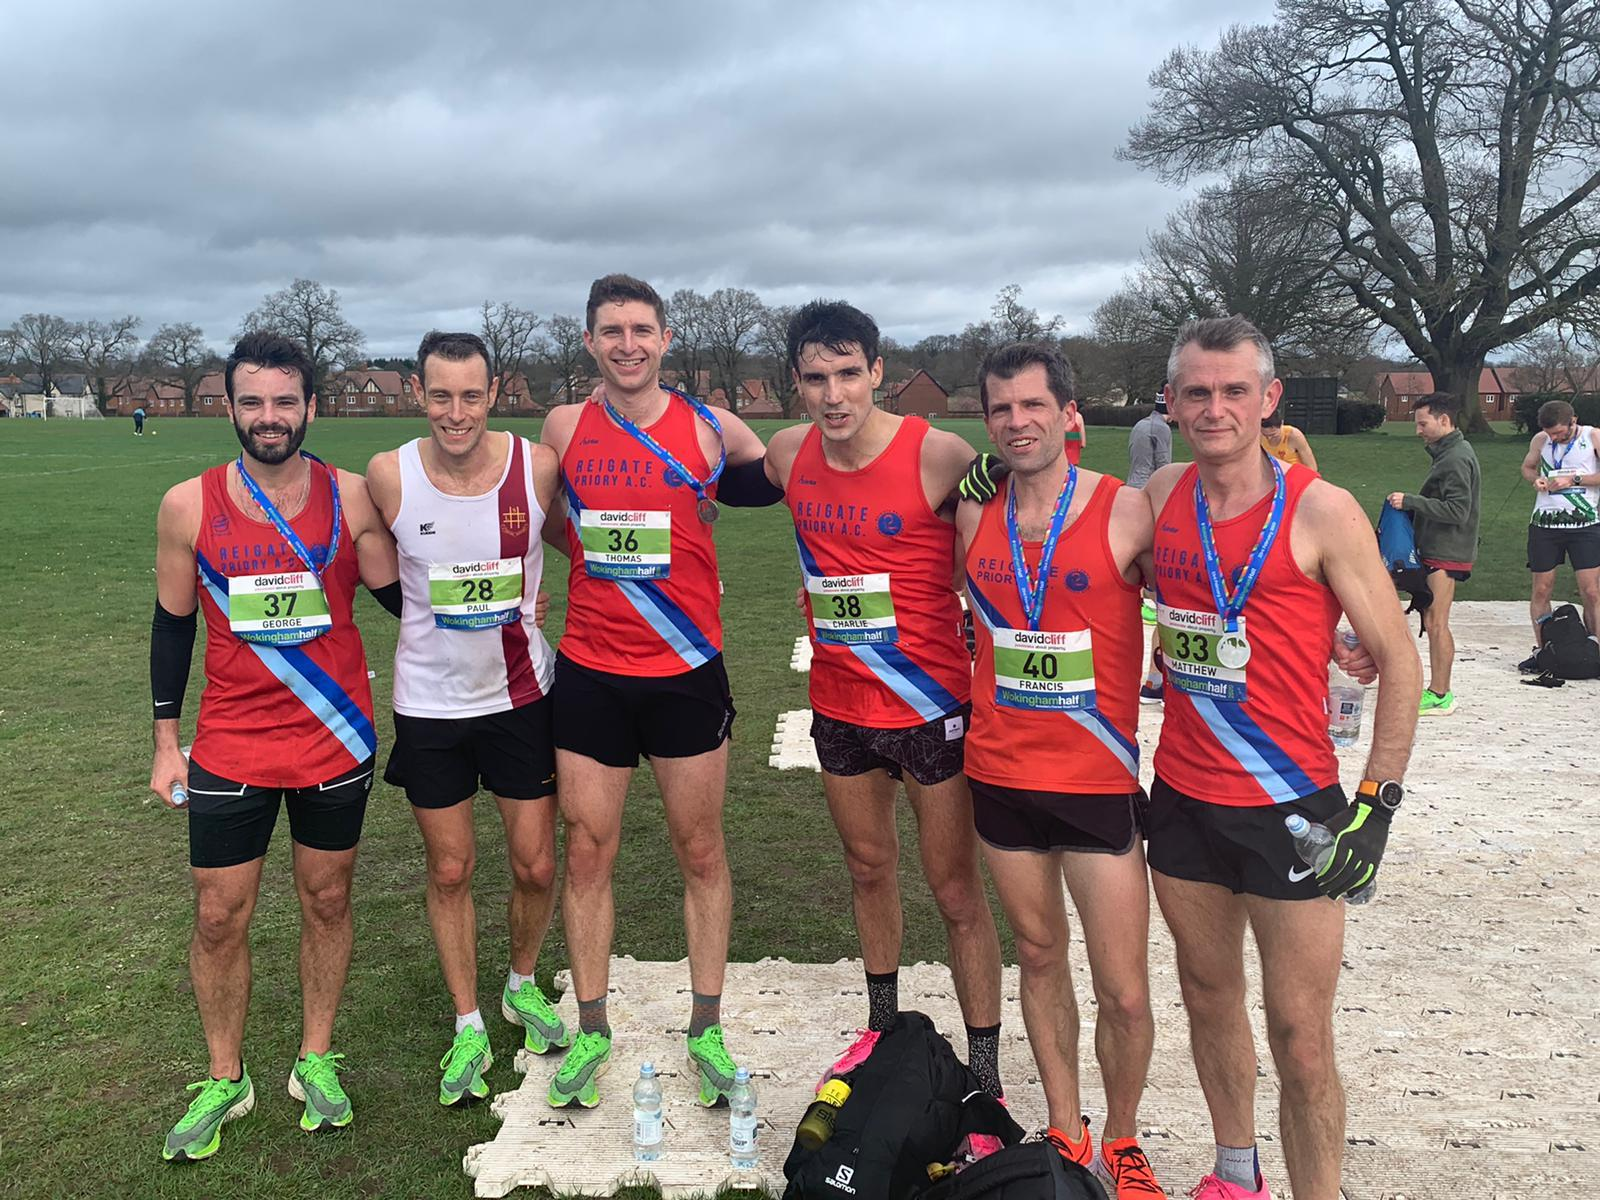 RPAC men at Wokingham 2020